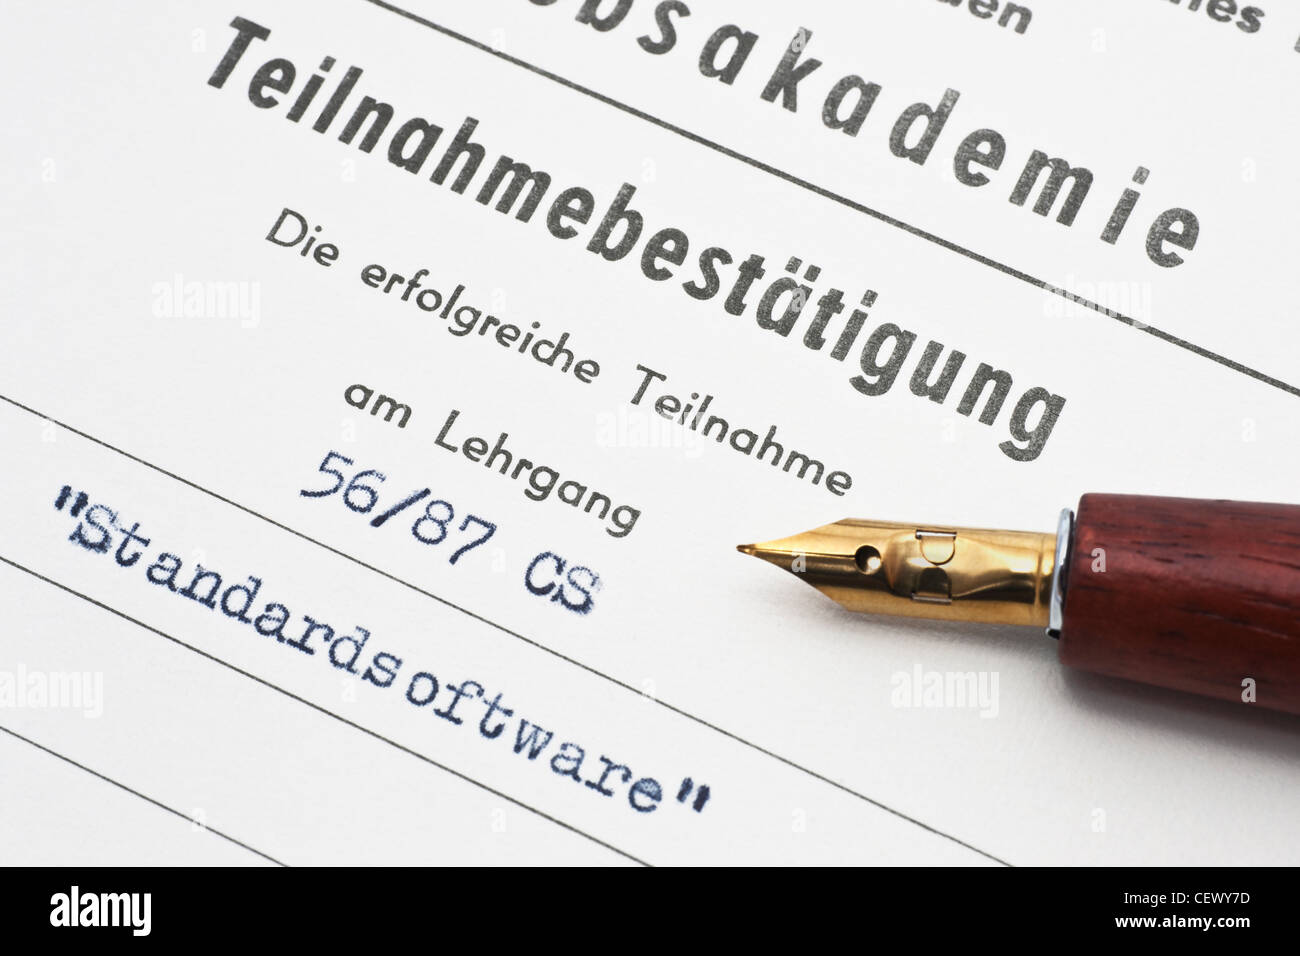 Detail photo of a confirmation of participation in a standard software course, German language - Stock Image